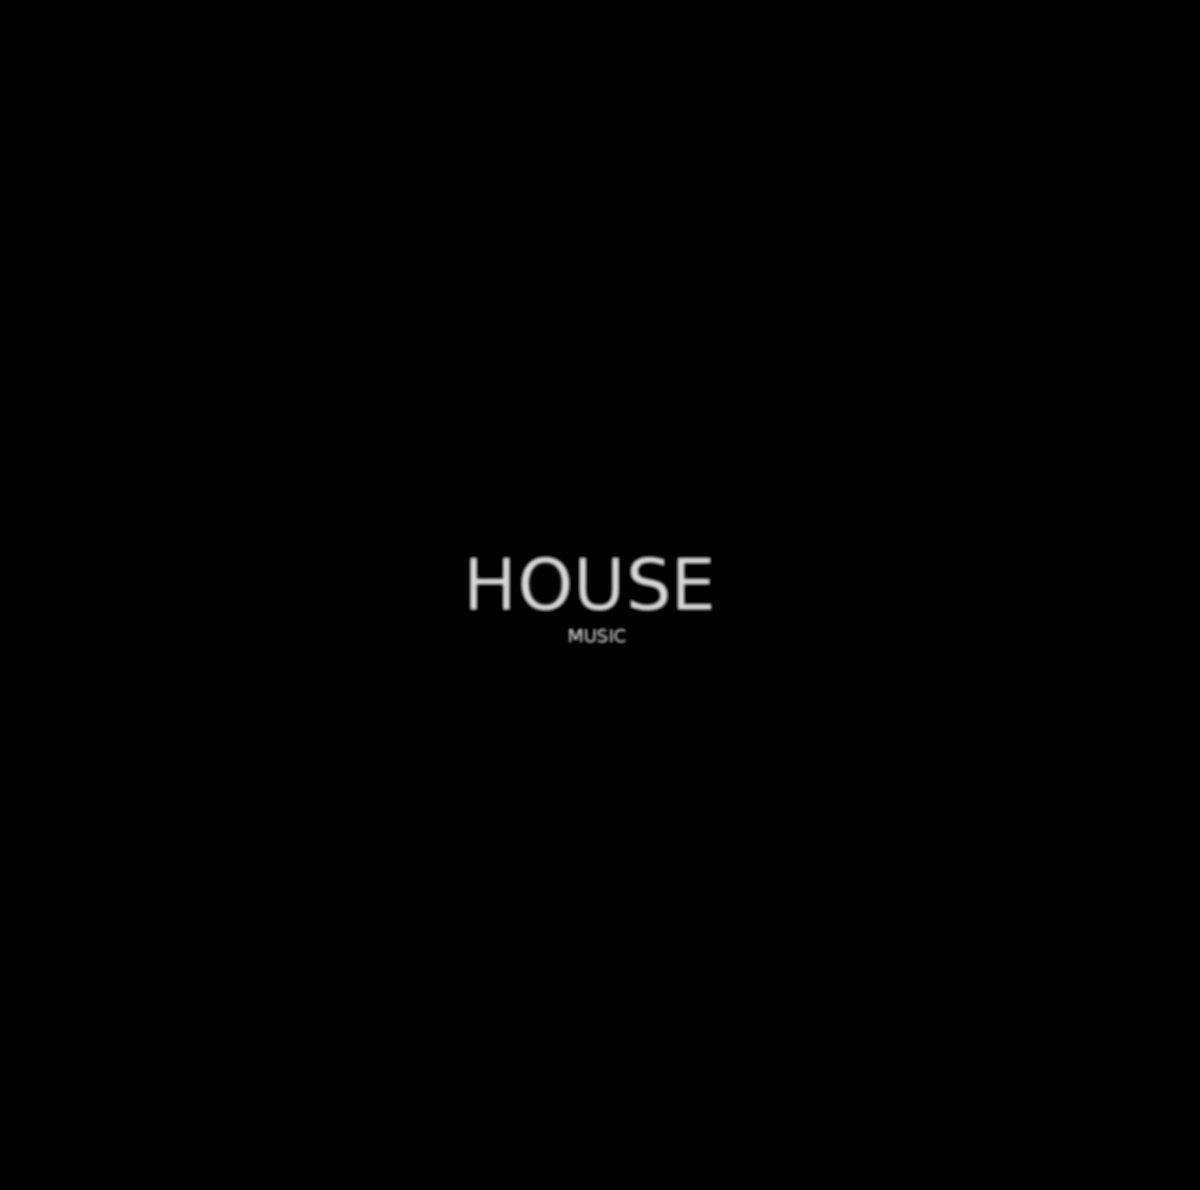 House music todosomosdios for Album house music